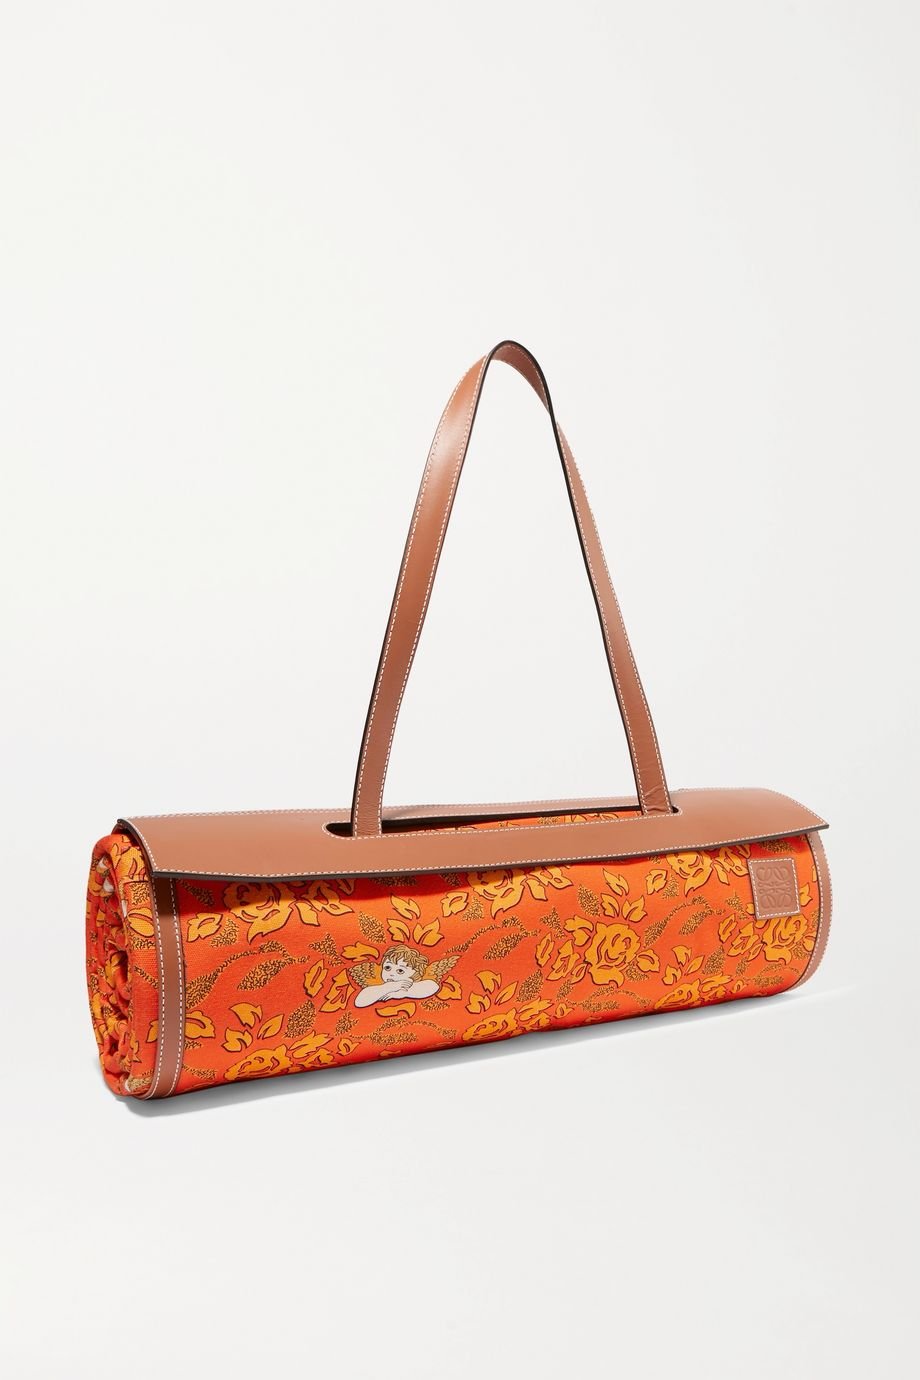 Loewe + Paula's Ibiza leather-trimmed bamboo and printed canvas beach mat